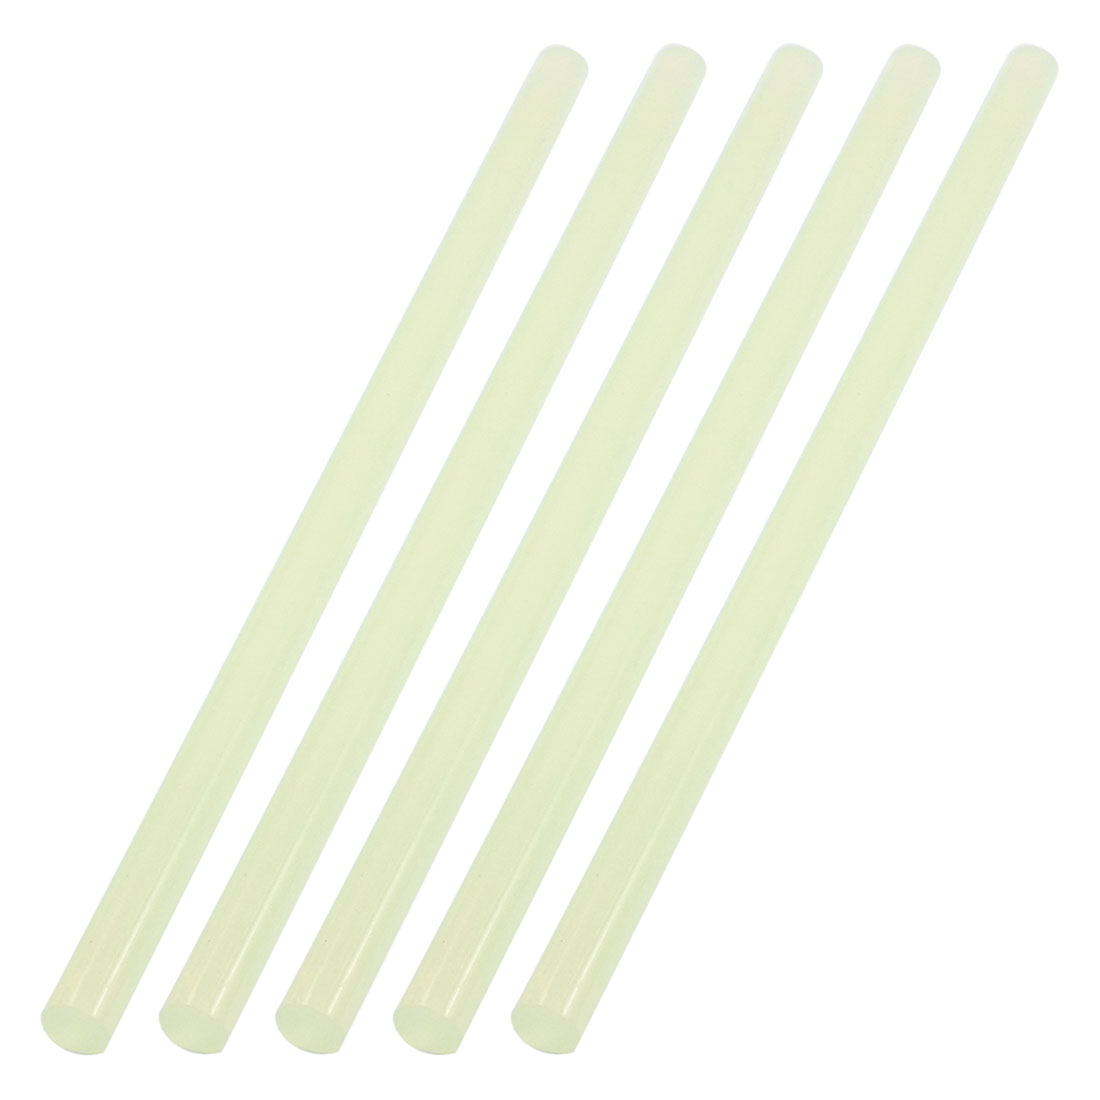 5 Pcs 260mm Length 11mm Diameter Soldering Iron Clear White Plastic Hot Melt Glue Stick